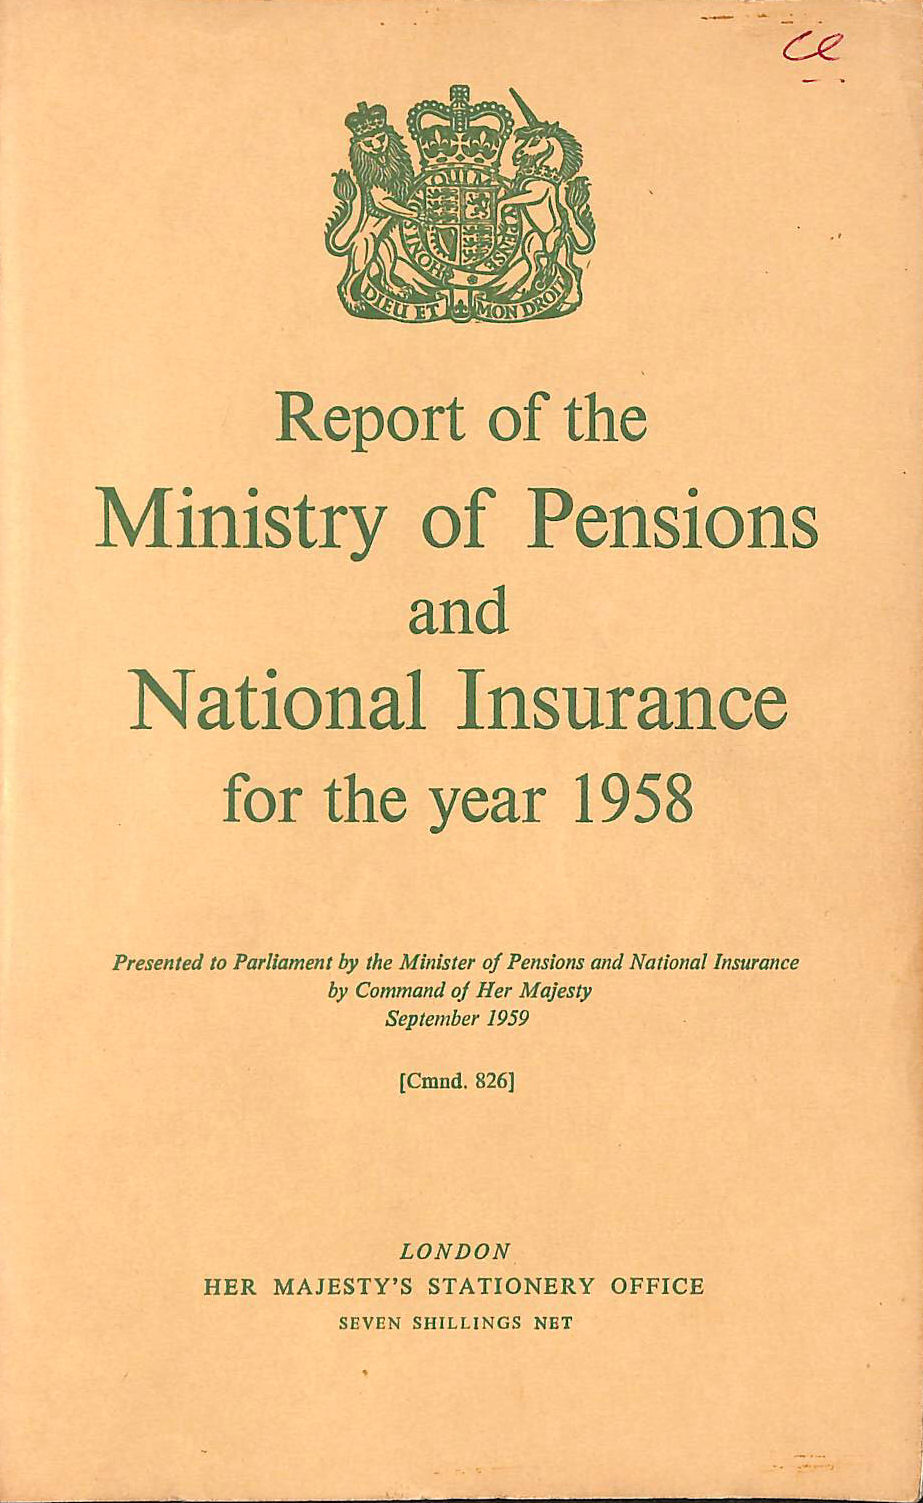 Image for Report of the Ministry of Pensions and National Insurance 1958